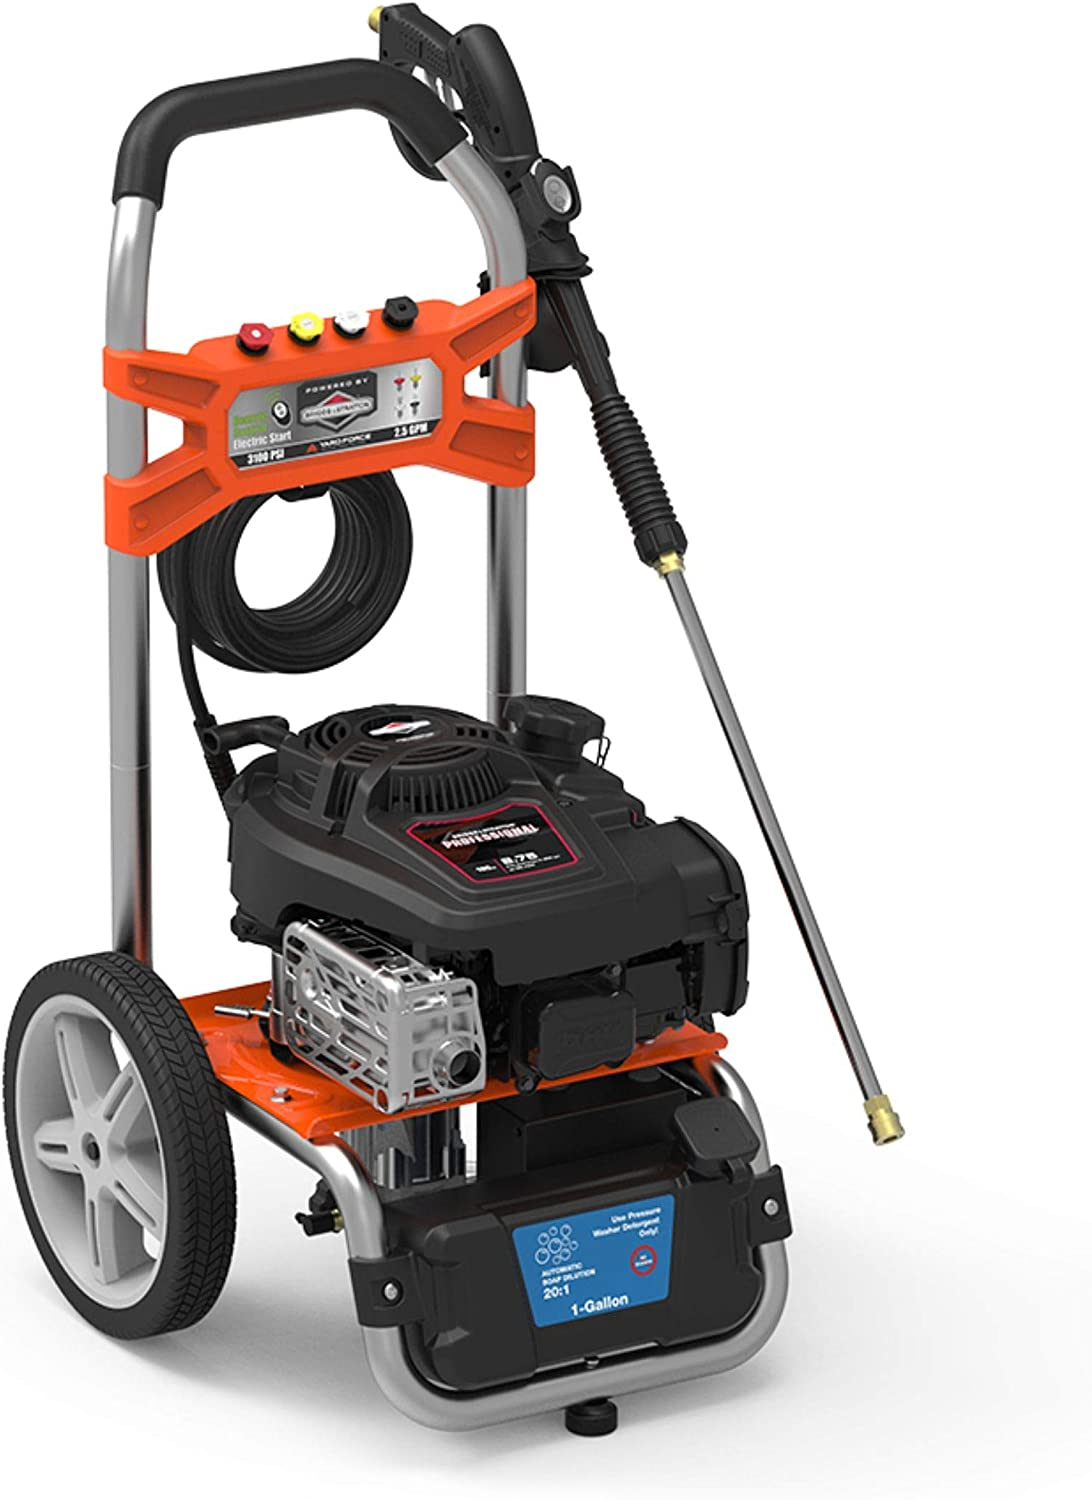 YARD FORCE YF3100ES-R 3100 PSI Gas Pressure Washer